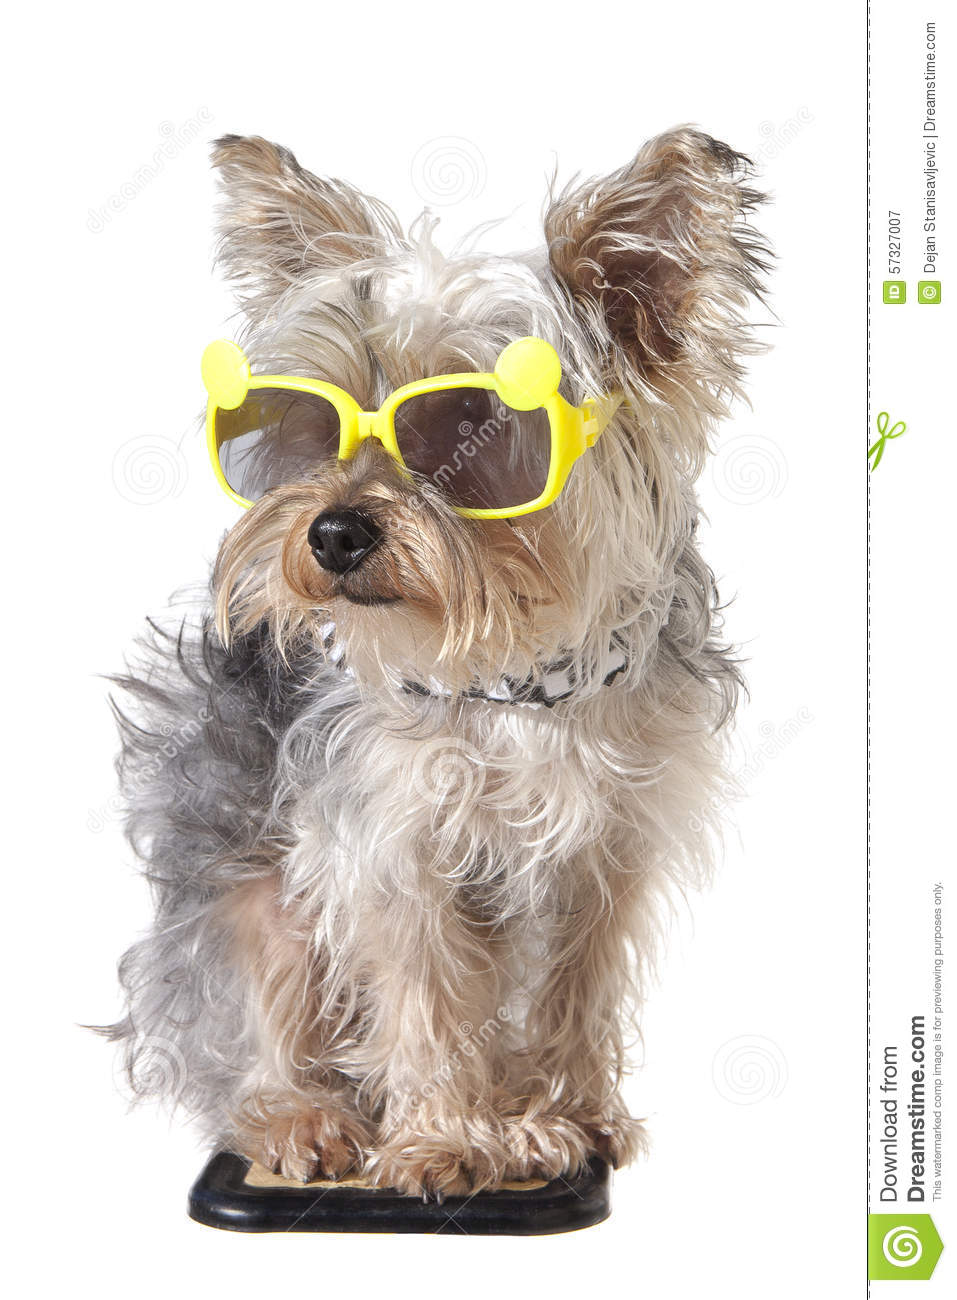 Adorable Puppy With Sunglasses, Isolated On White. Stock ...